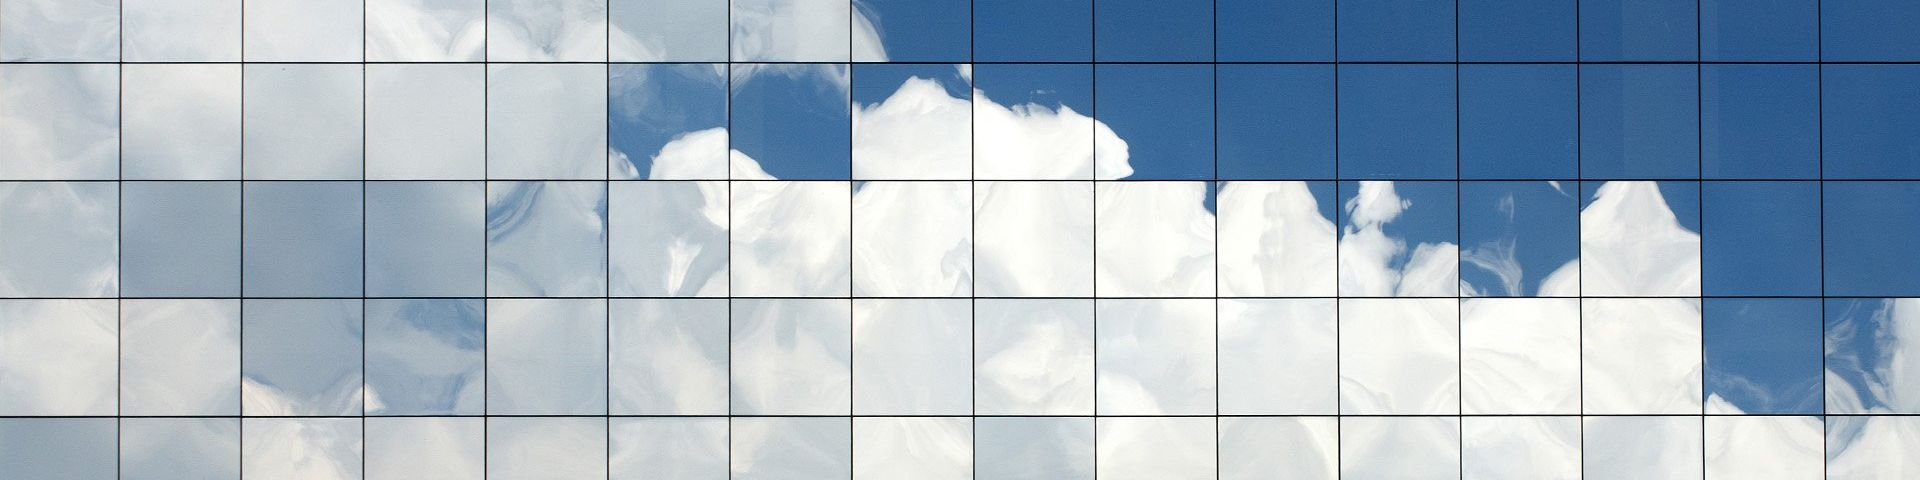 Clouds reflected in glass windows.